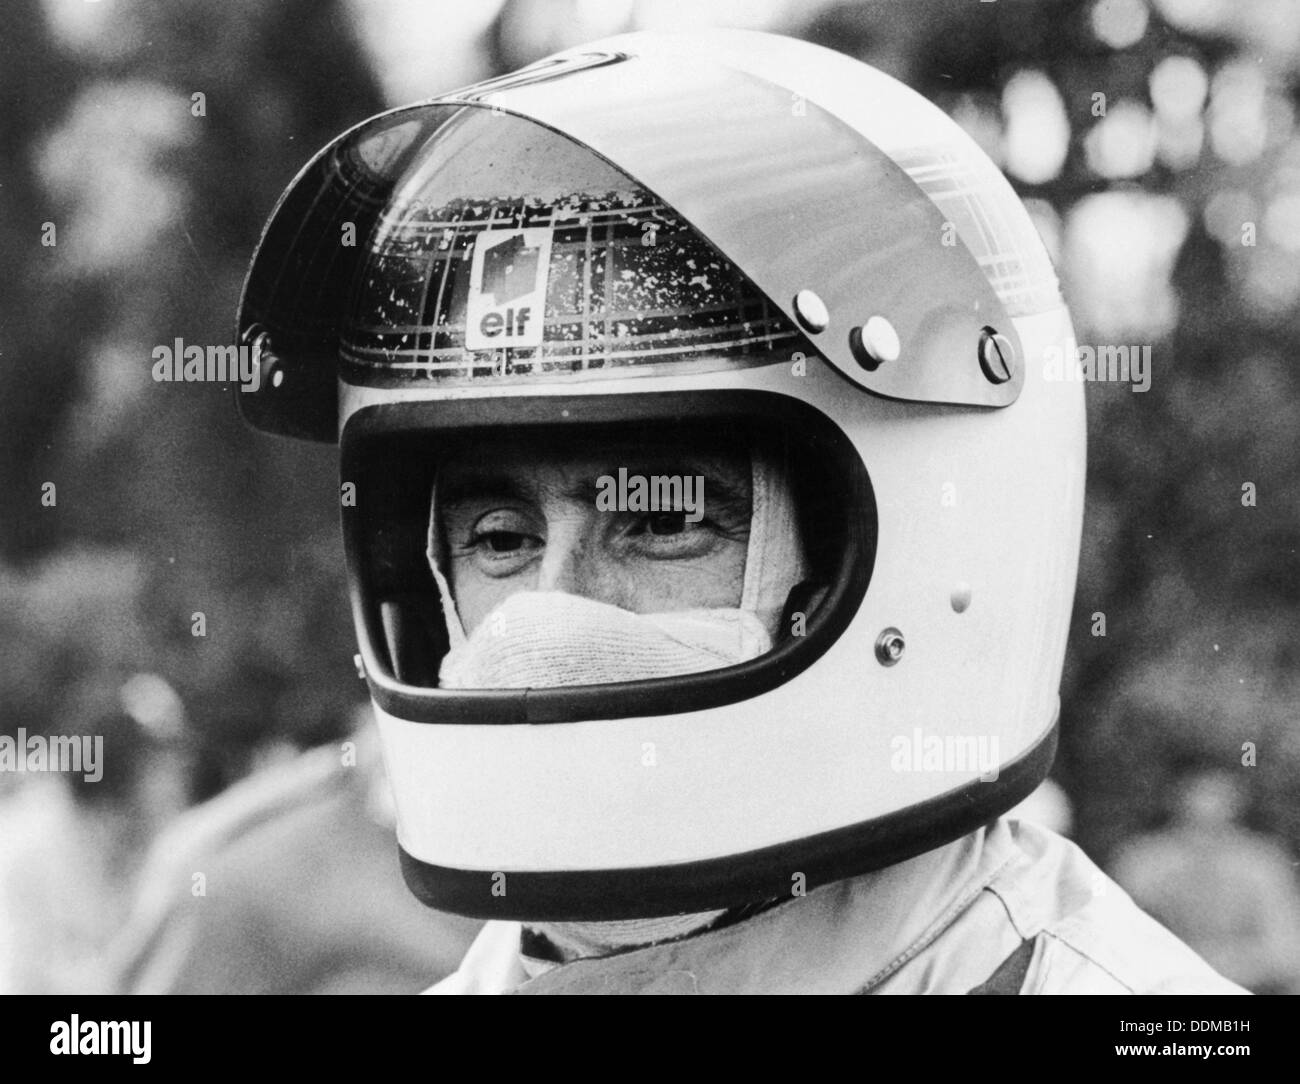 Jackie Stewart, early 1970s. - Stock Image